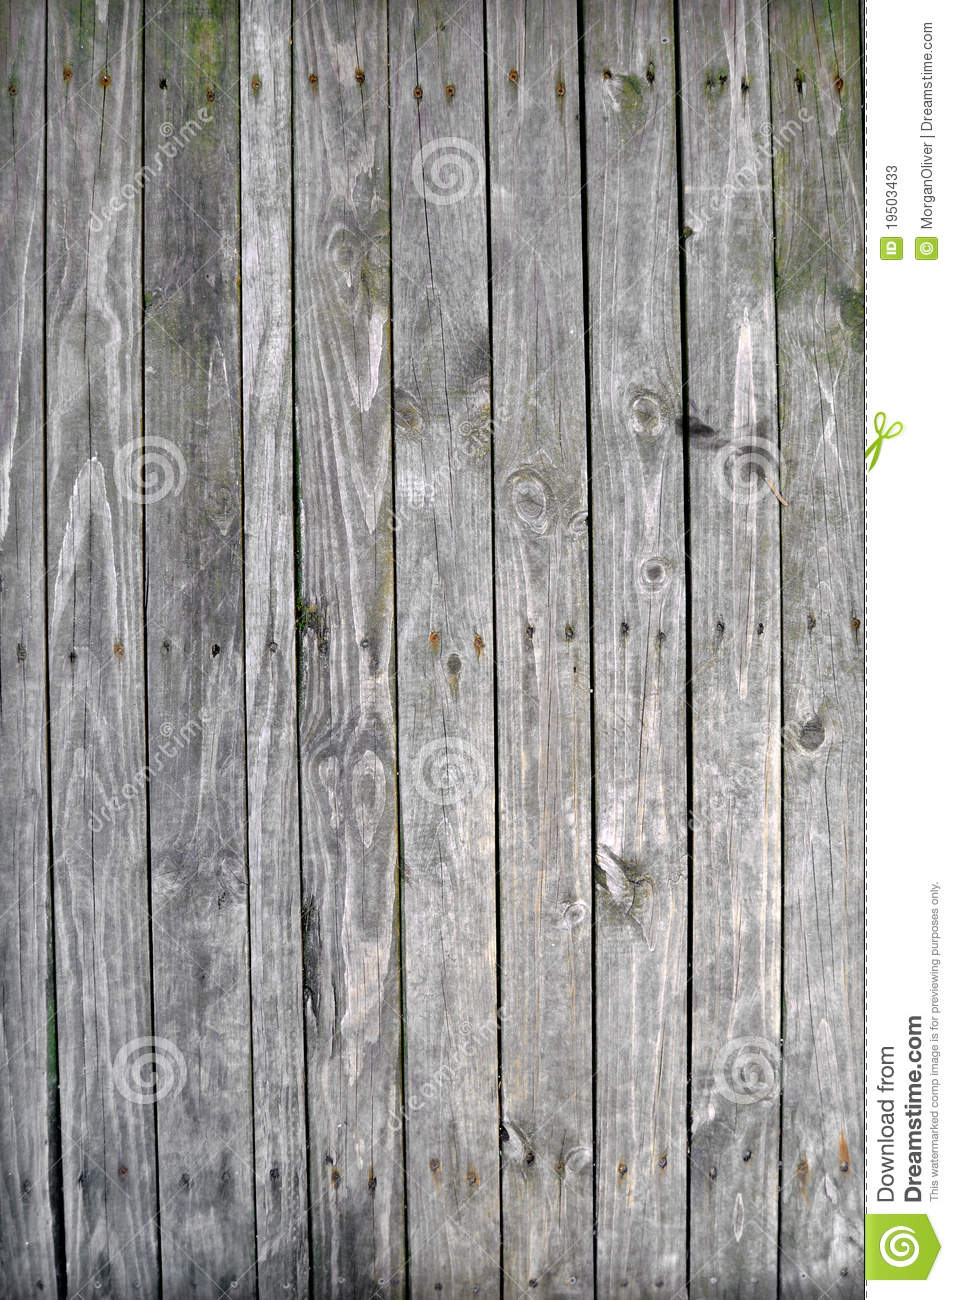 Old Wood Planks Stock Photos - Image: 19503433